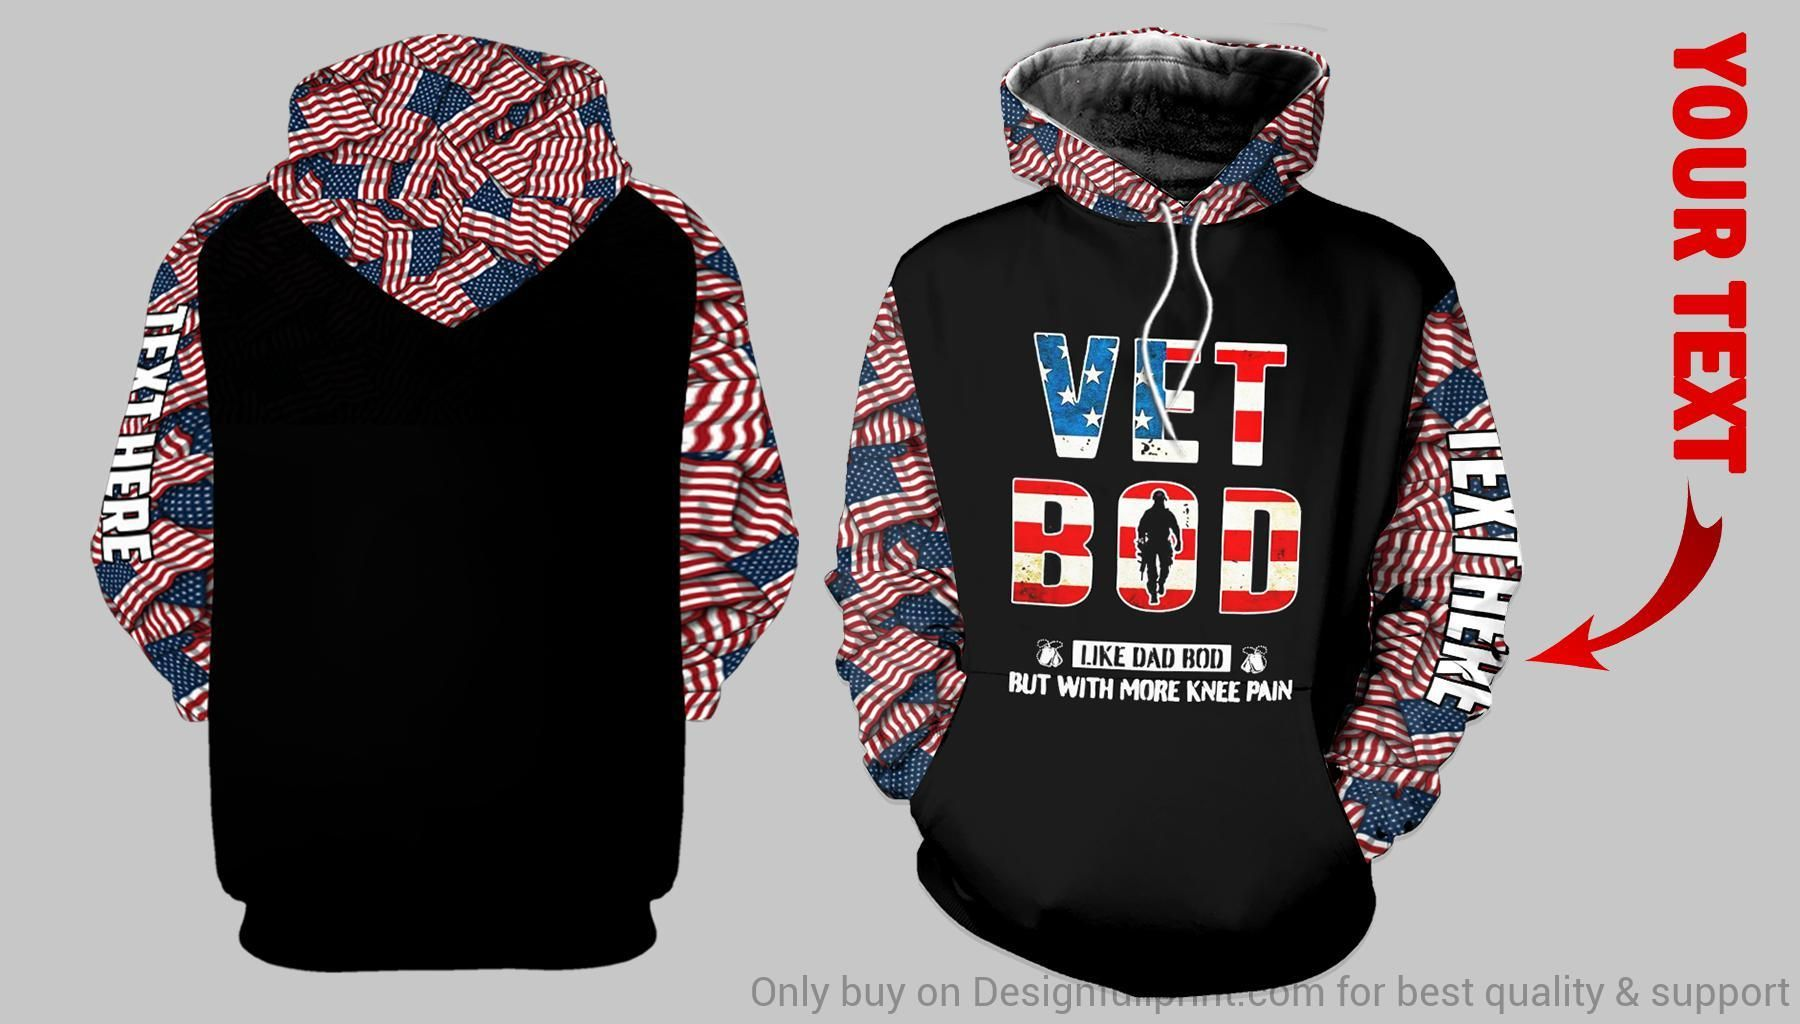 Vet Bod Like A Dad Bod But With More Knee Pain Veteran Personalized US Uni Size Hoo